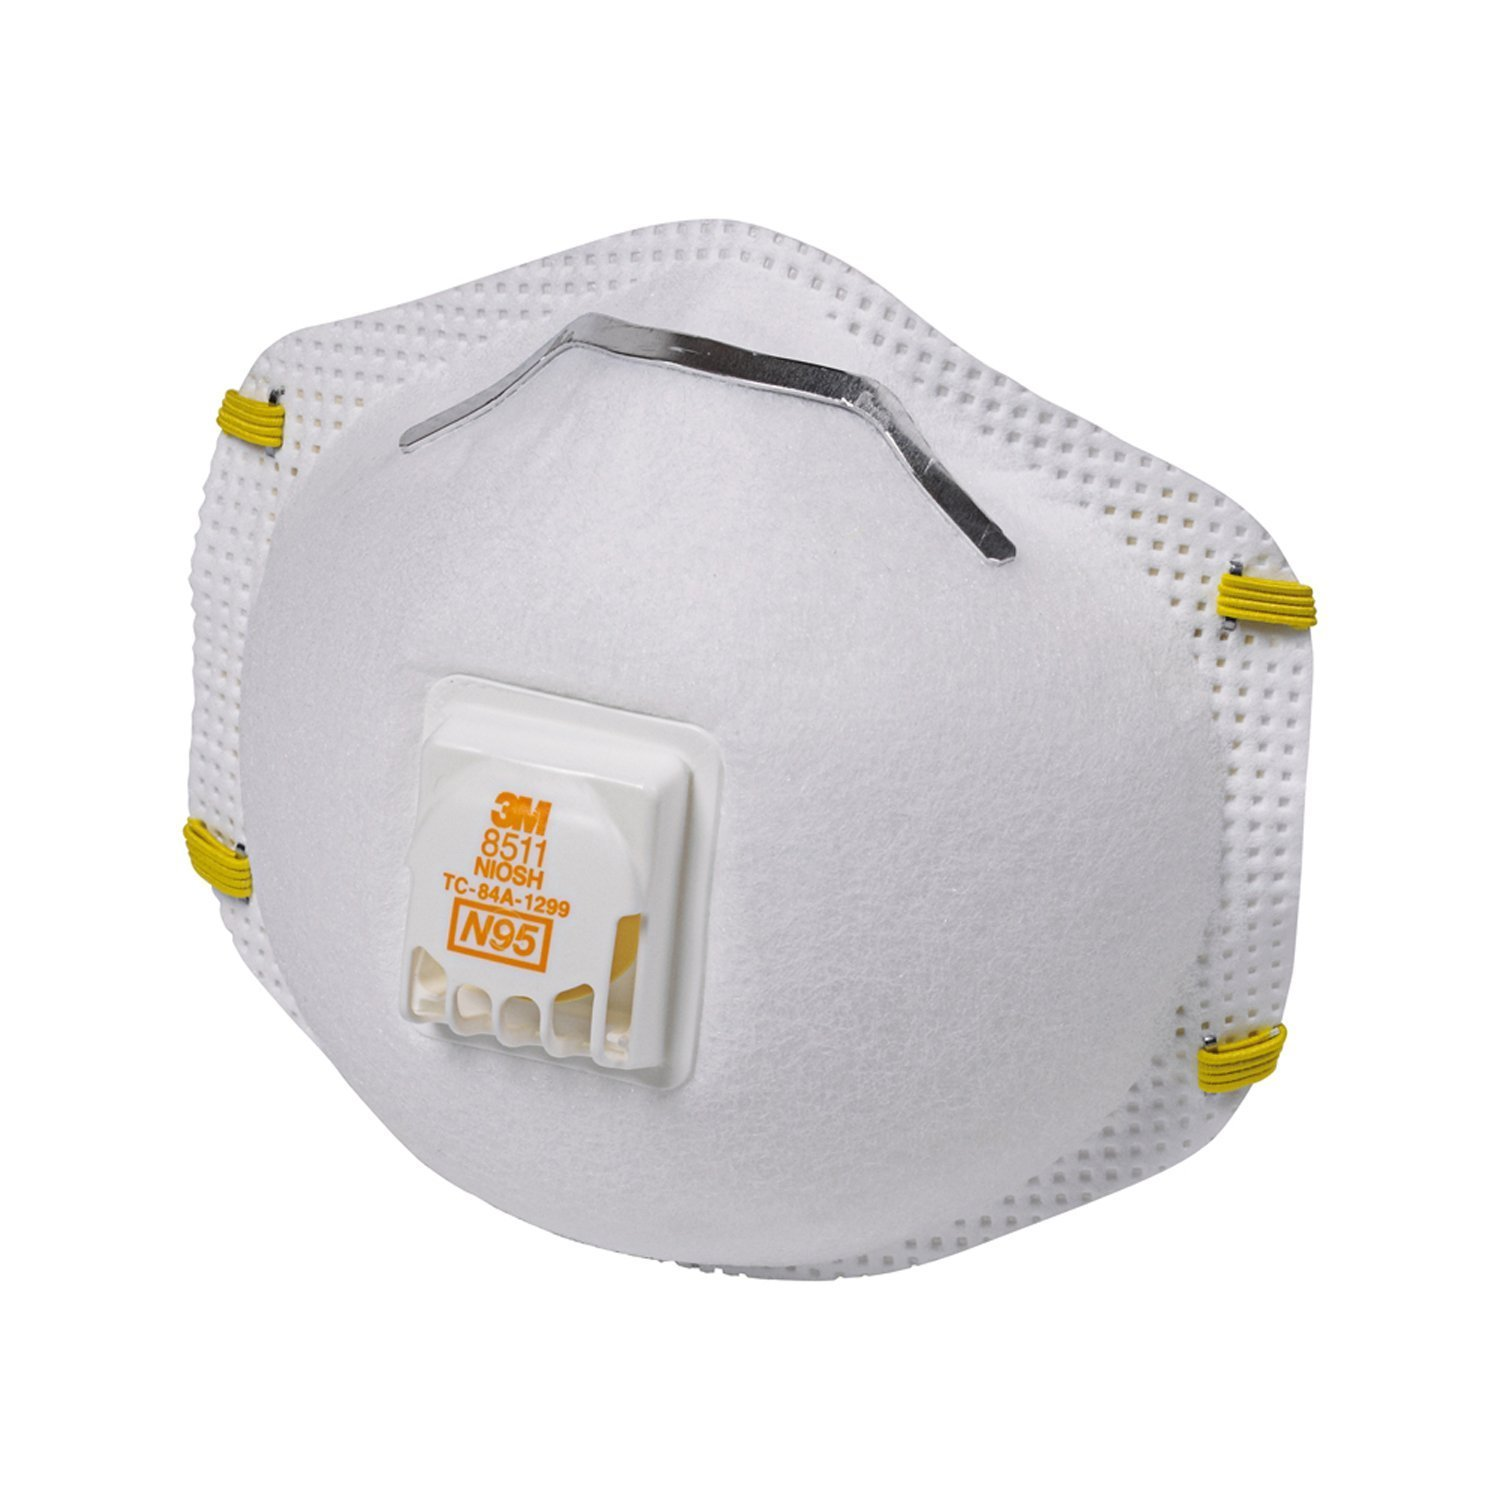 RESPIRATOR DISPOSABLE PARTICULATE N95 NIOSH TWO ELASTIC STRAPS WHITECOOL FLOW EXHALATION VALVE ADJUSTABLE NOSECLIP 3M 8511 Case of 10 Boxes of 10